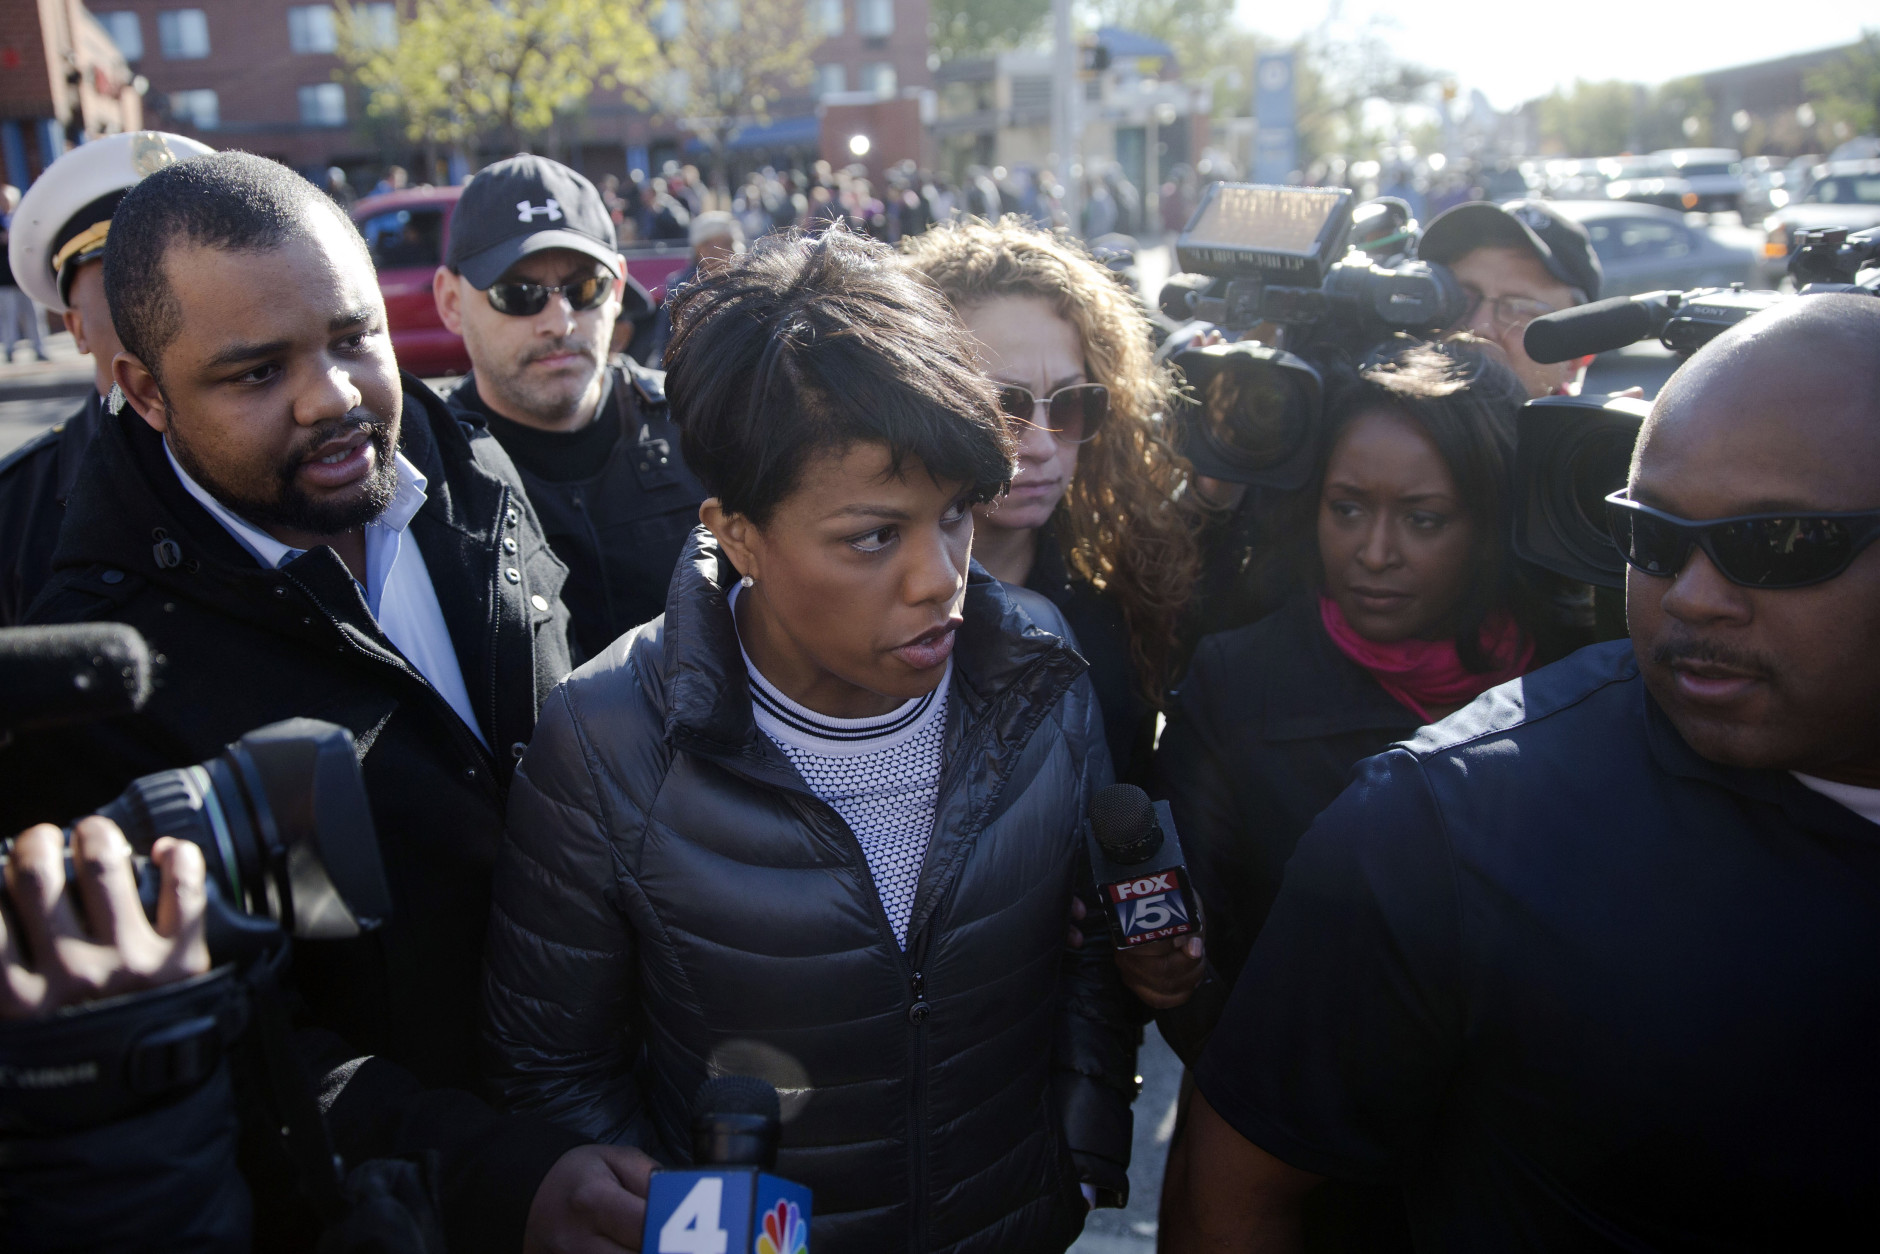 Baltimore Mayor Stephanie Rawlings-Blake tours the city Tuesday, April 28, 2015, in the aftermath of rioting following Monday's funeral for Freddie Gray, who died in police custody, in Baltimore. (AP Photo/Matt Rourke)